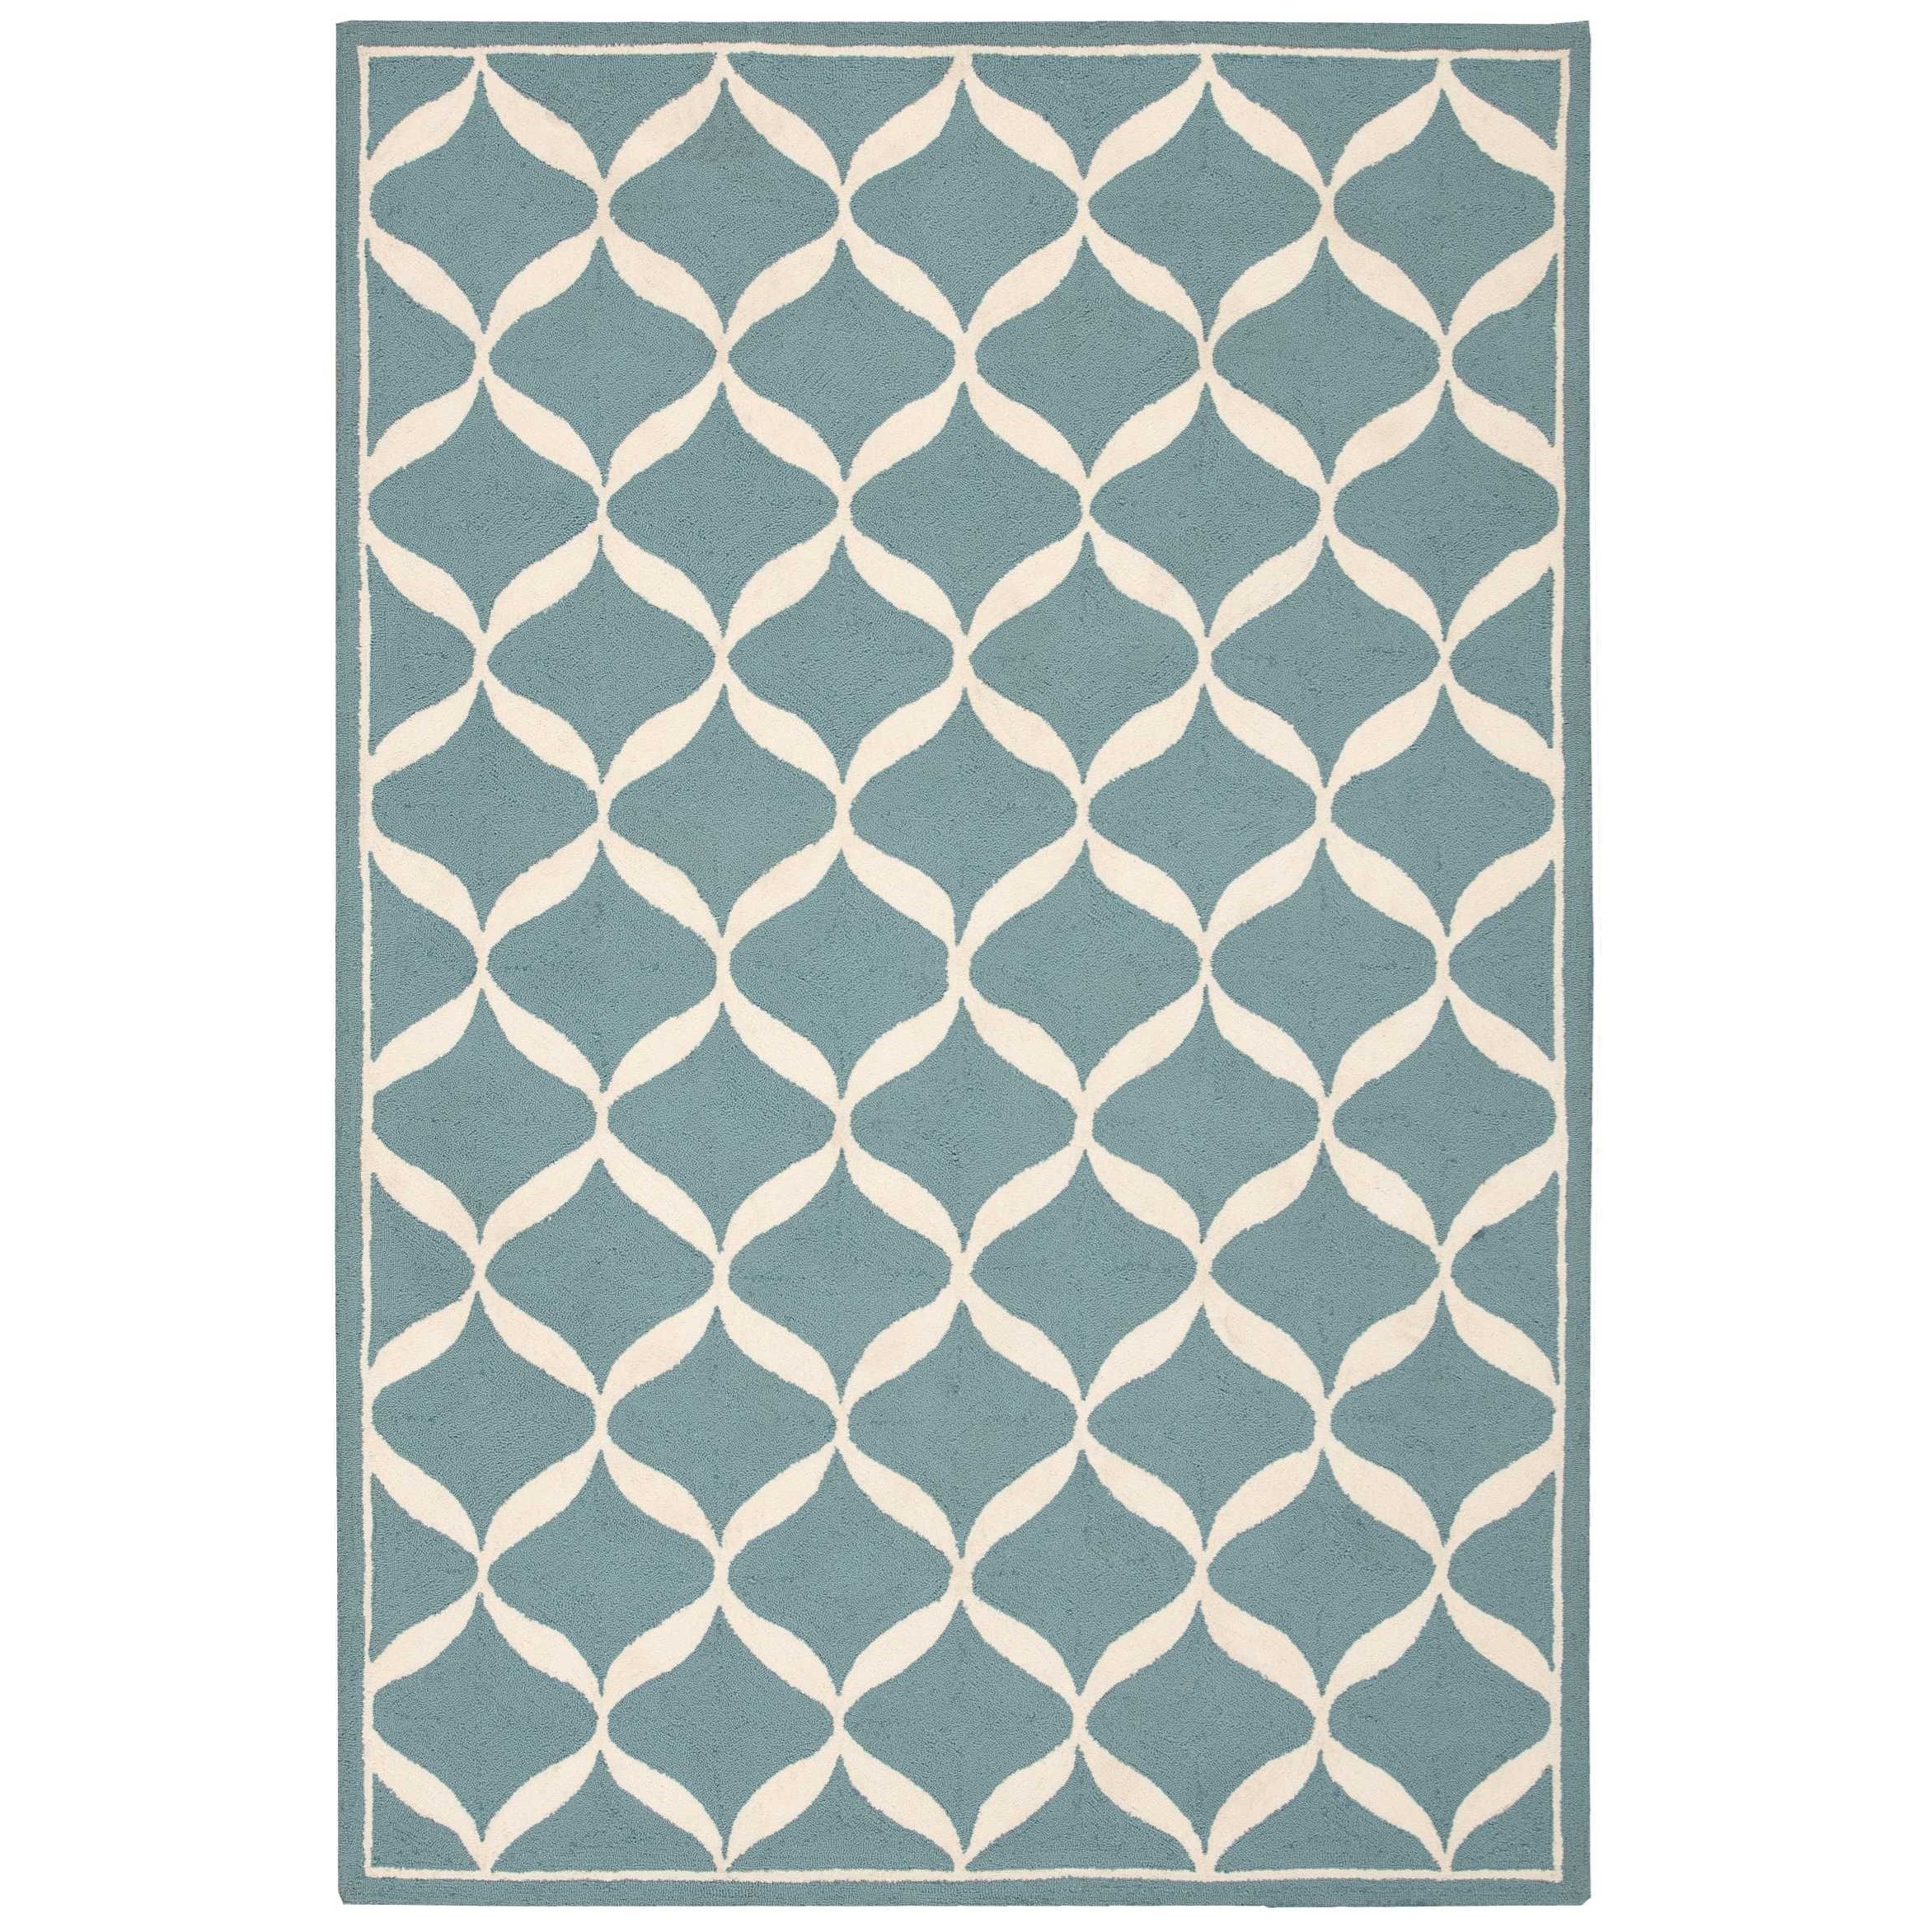 "Decor1 2'6"" X 3'10"" Aqua/White Rug by Nourison at Home Collections Furniture"